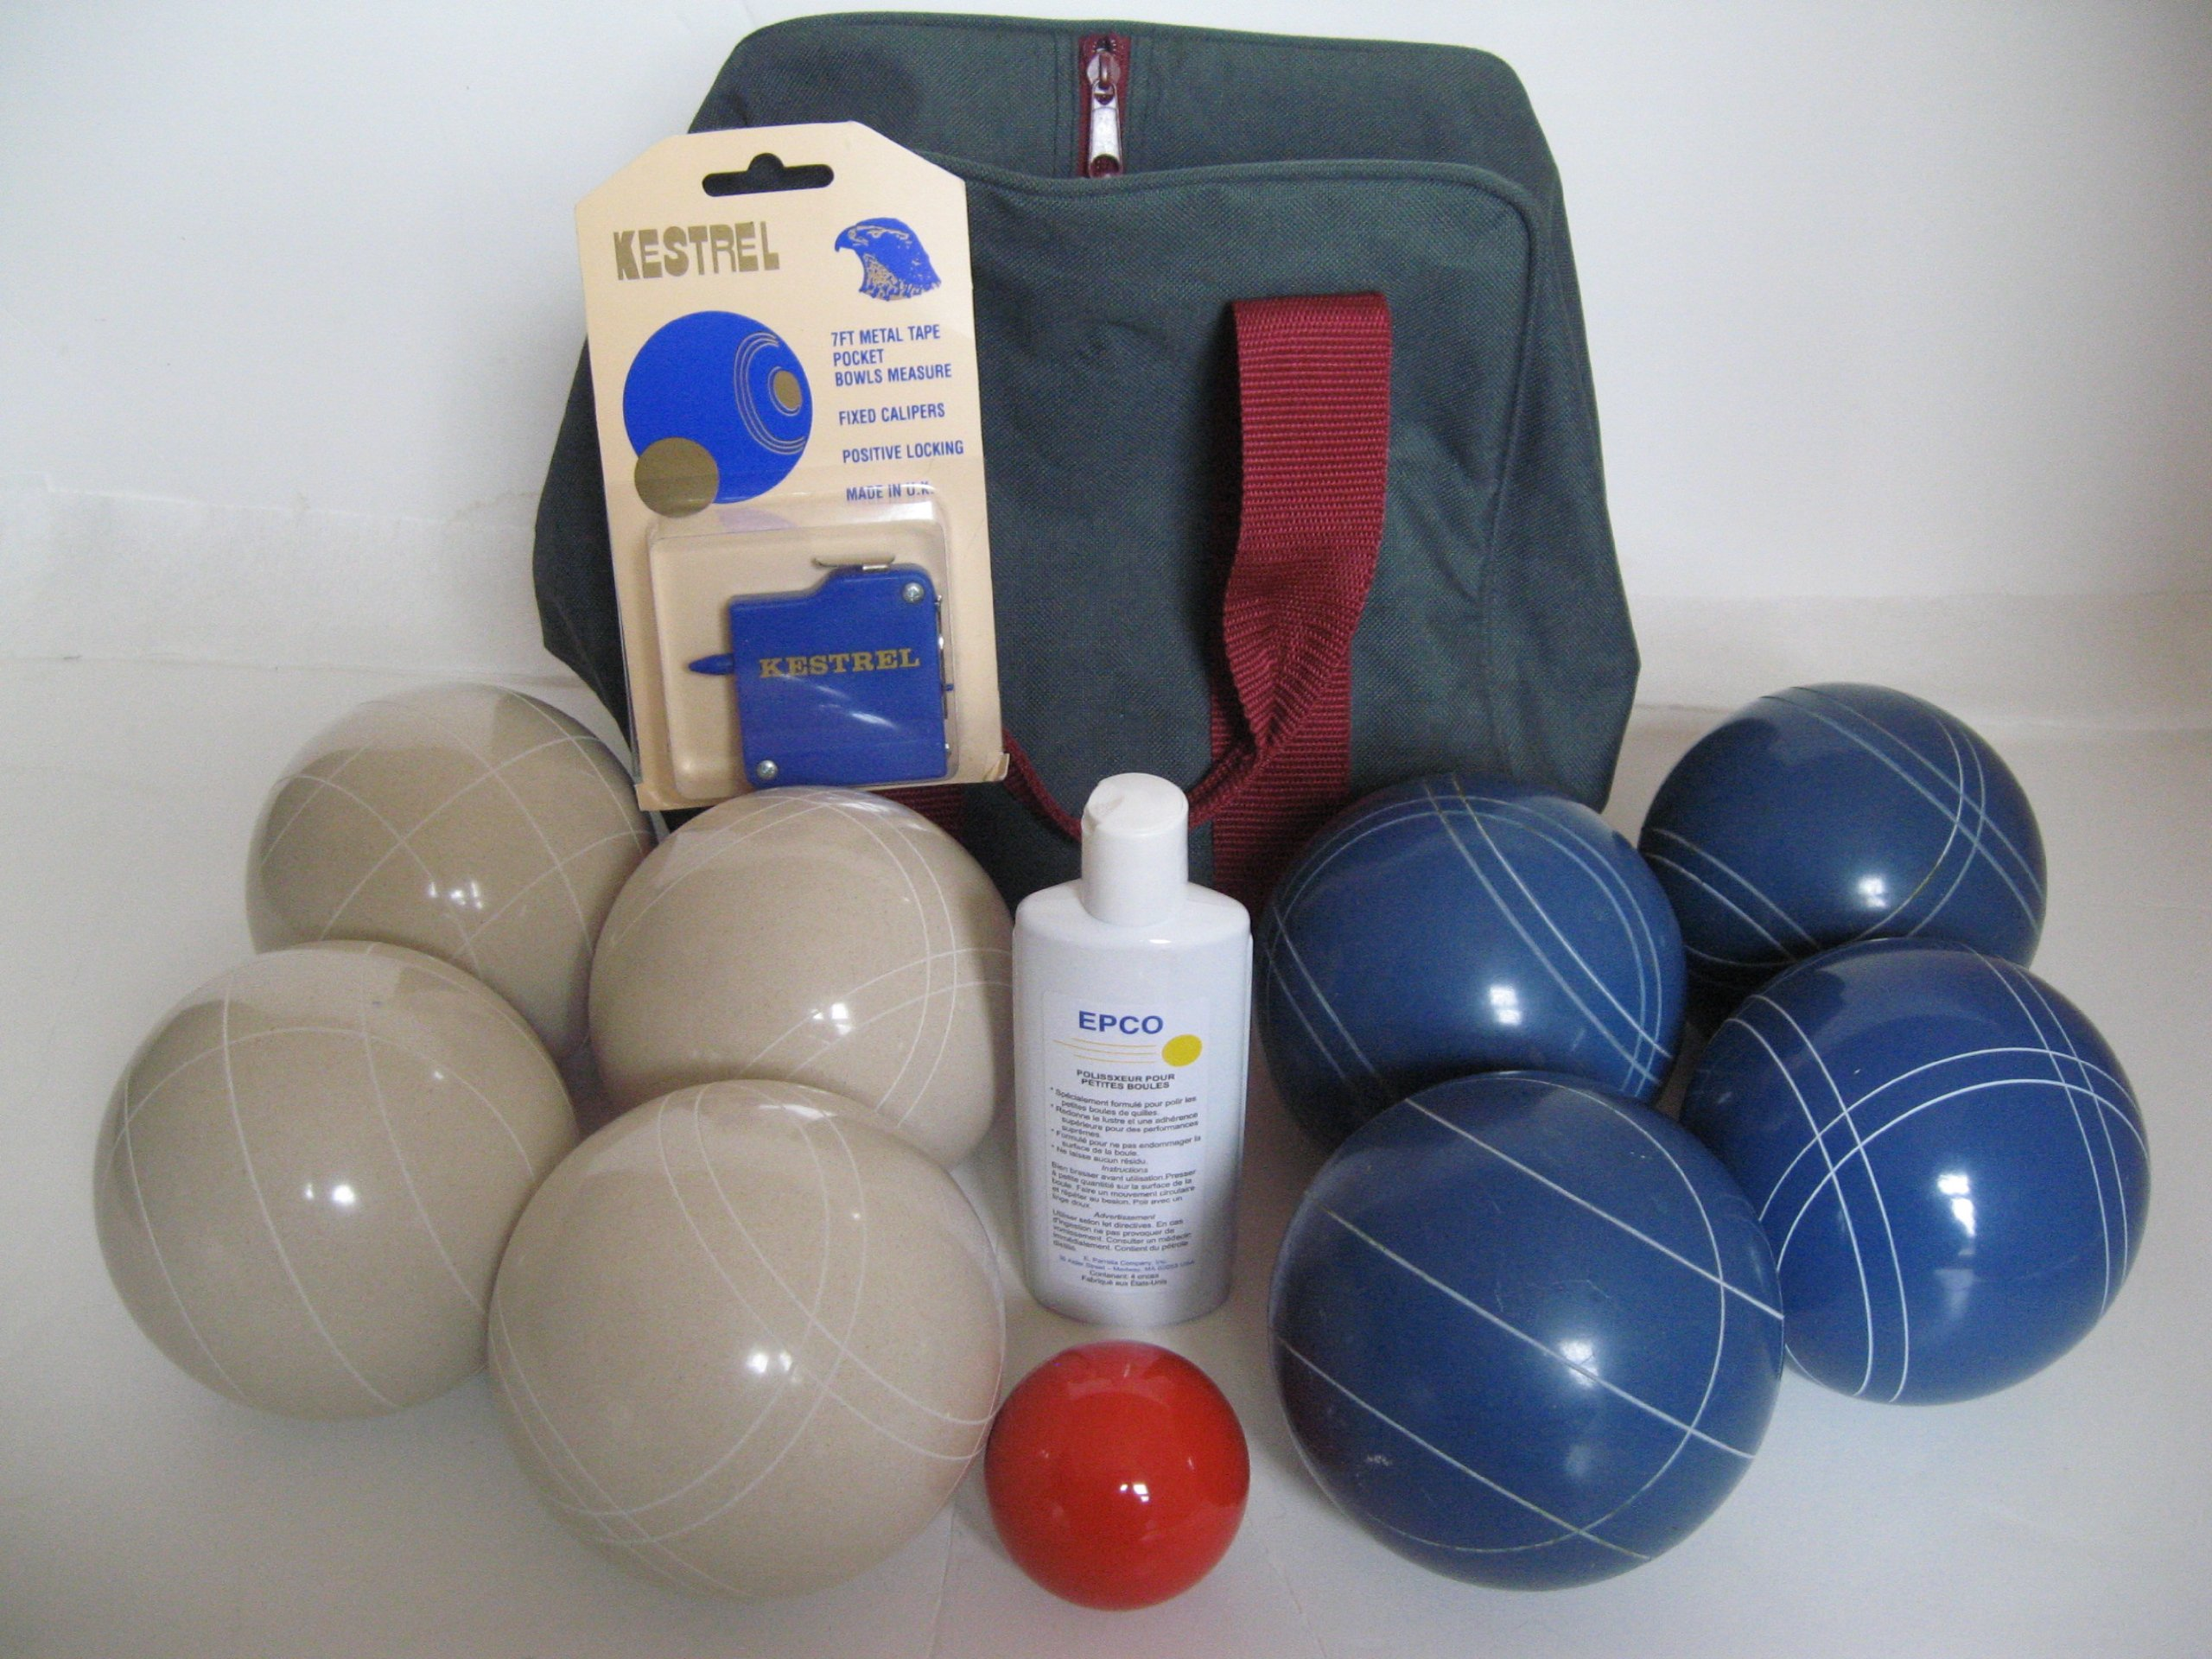 Premium Quality Basic EPCO Bocce package - 110mm White and Blue balls, quality nylon bag, mea... by Epco